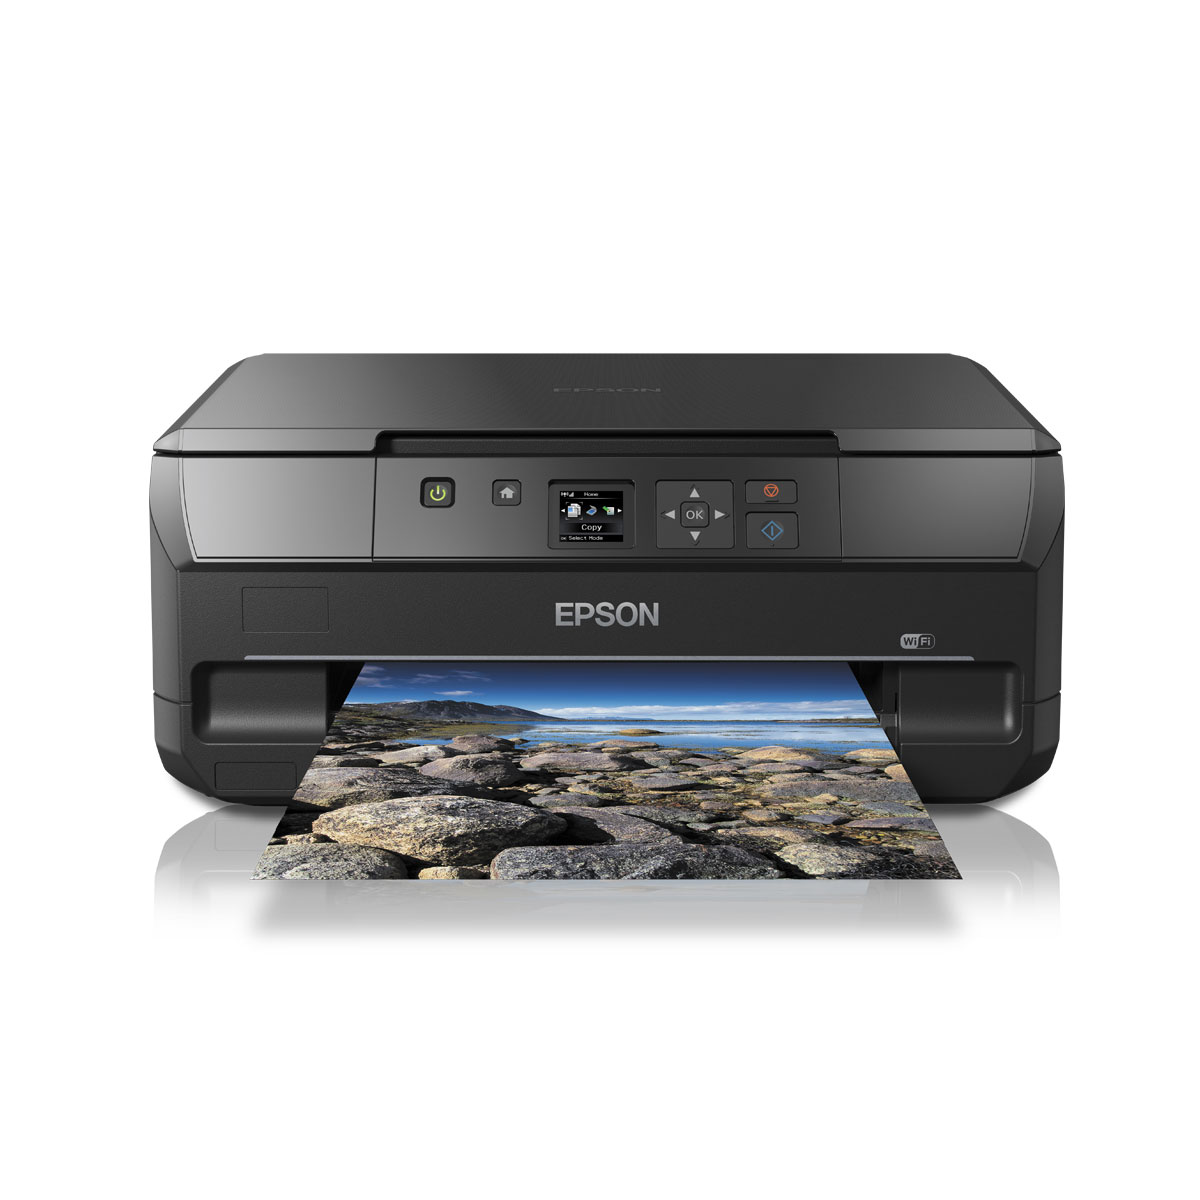 epson expression premium xp 510 imprimante multifonction epson sur ldlc. Black Bedroom Furniture Sets. Home Design Ideas